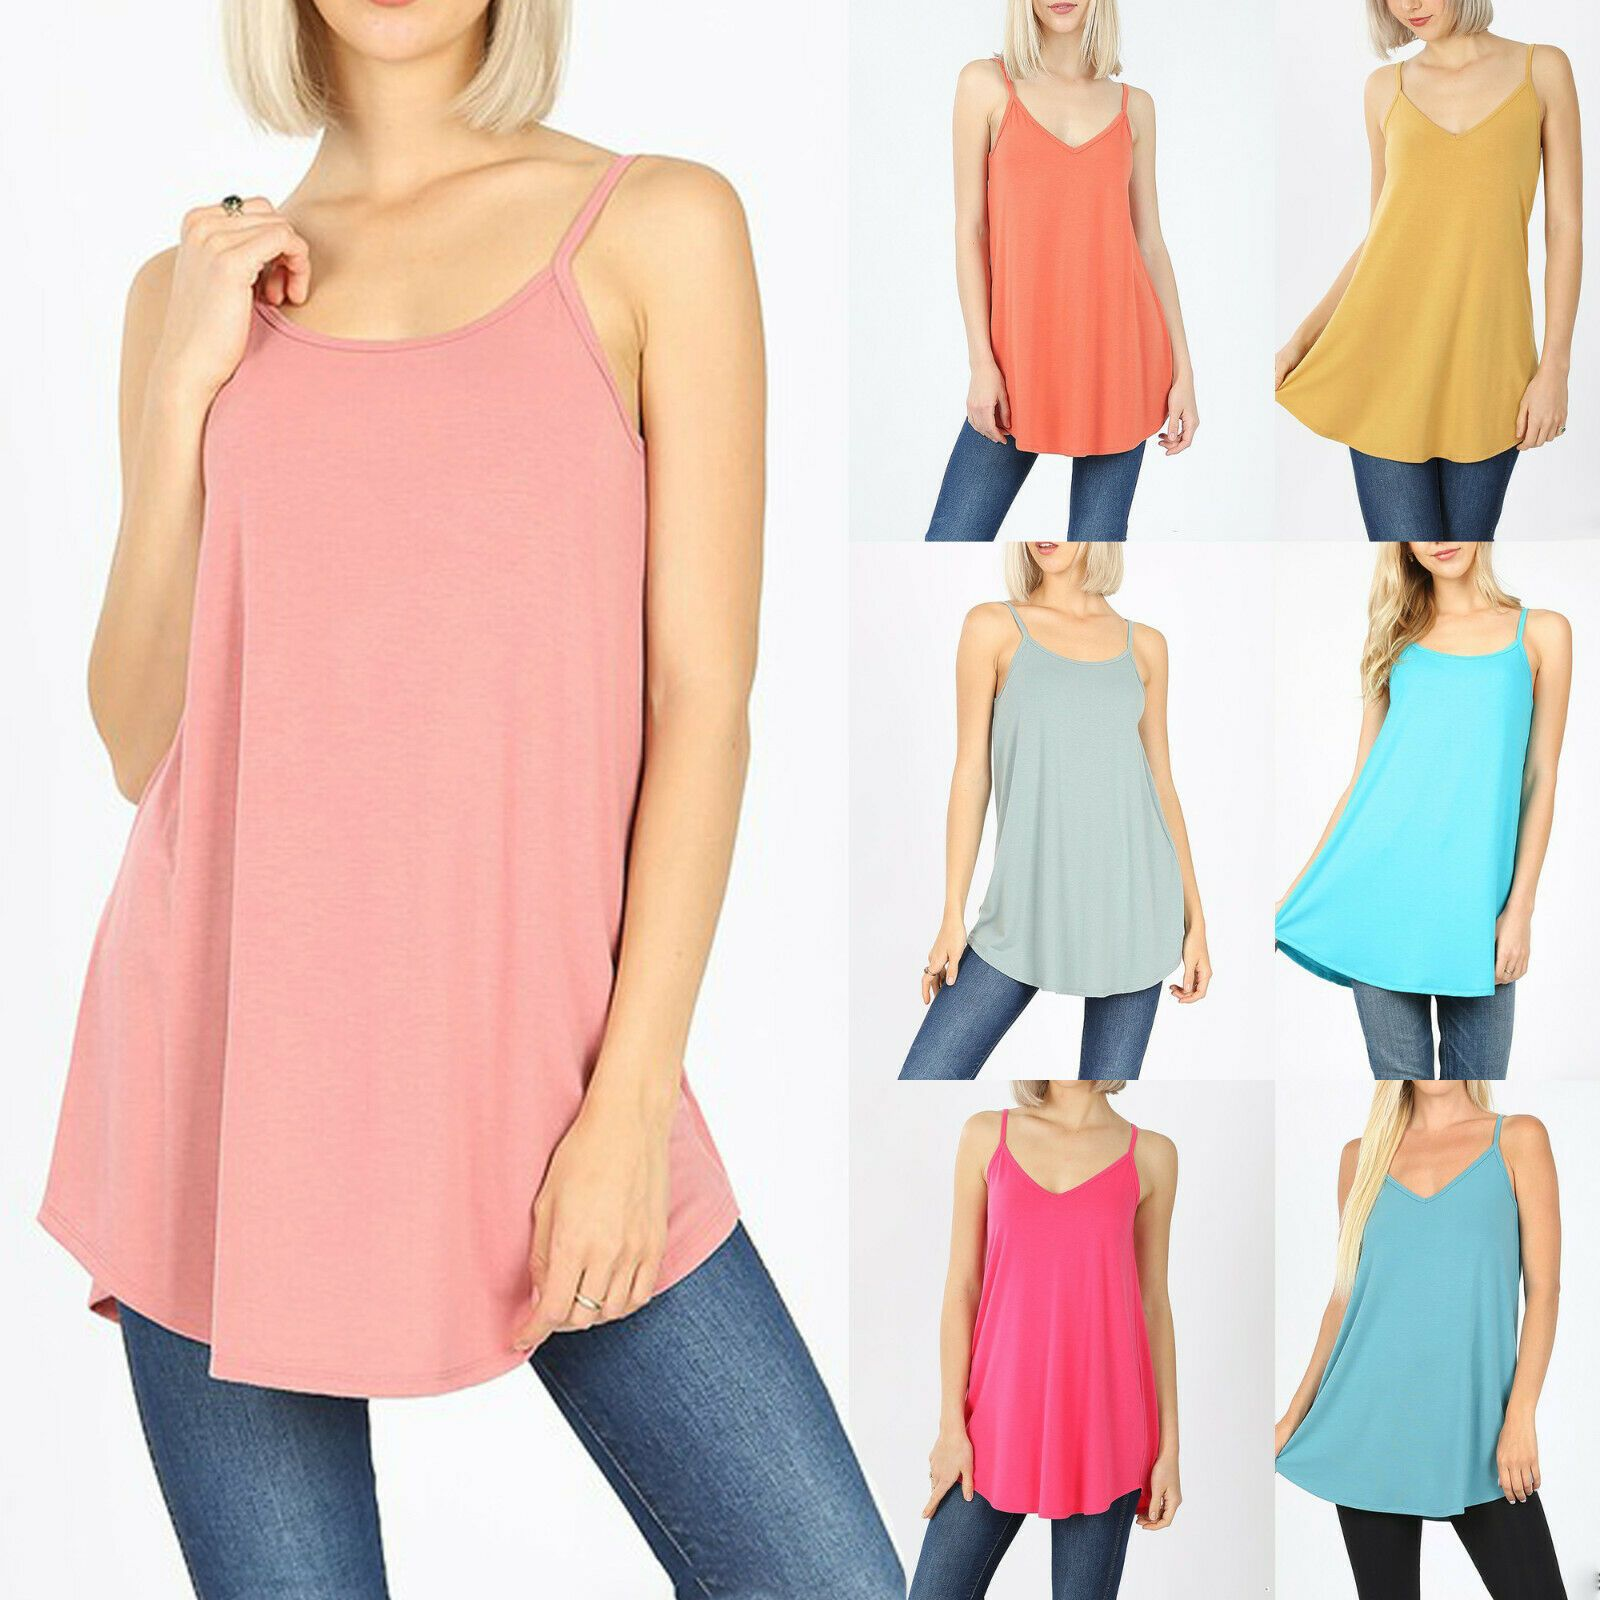 Sleeveless Blouse Oversized Top Loose Top Boho Tunic Top Long Blouse Cotton Blouse Casual Blouse Back Tank Top Boat Neck Top